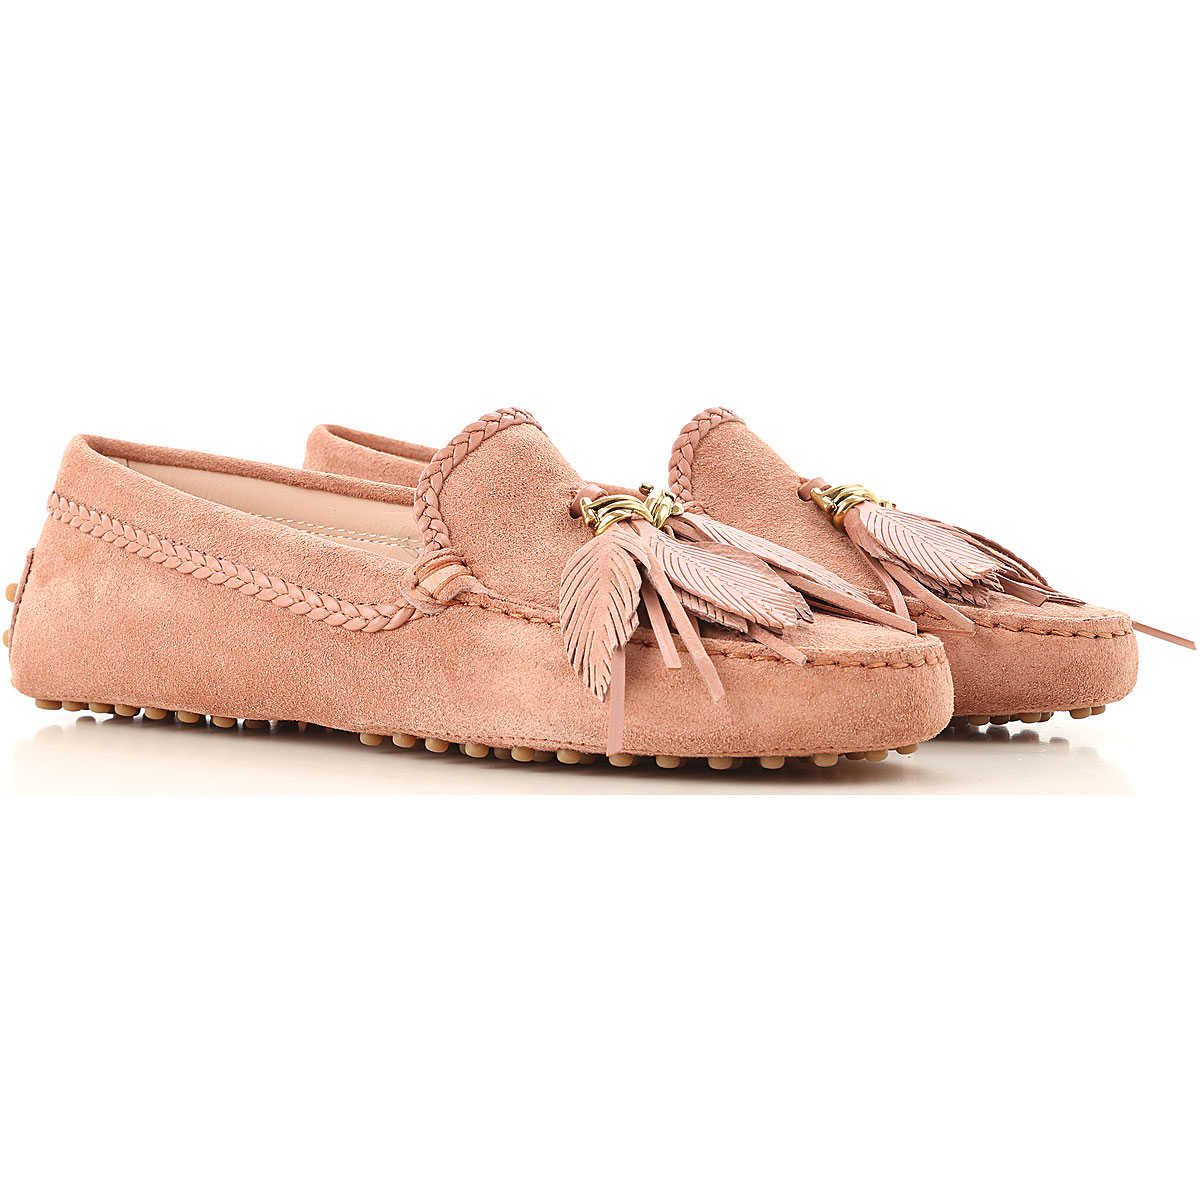 Tods Loafers for Women On Sale Dusty Pink SE - GOOFASH